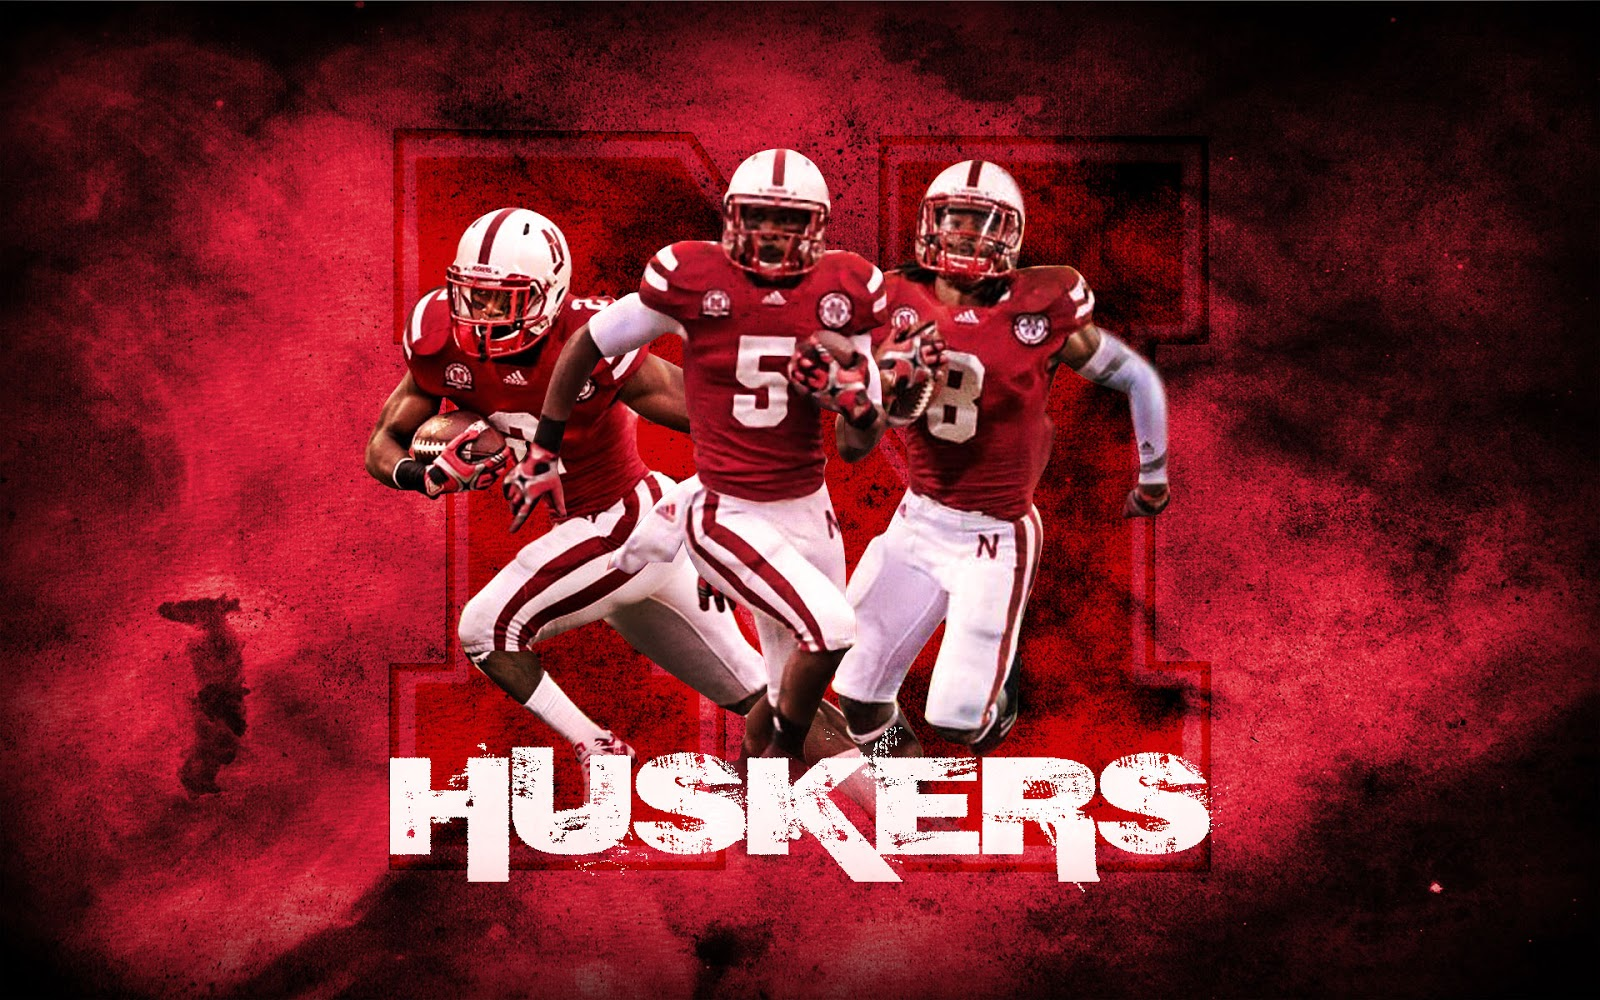 Nebraska Cornhusker Wallpapers Relay Wallpaper 1600x1000